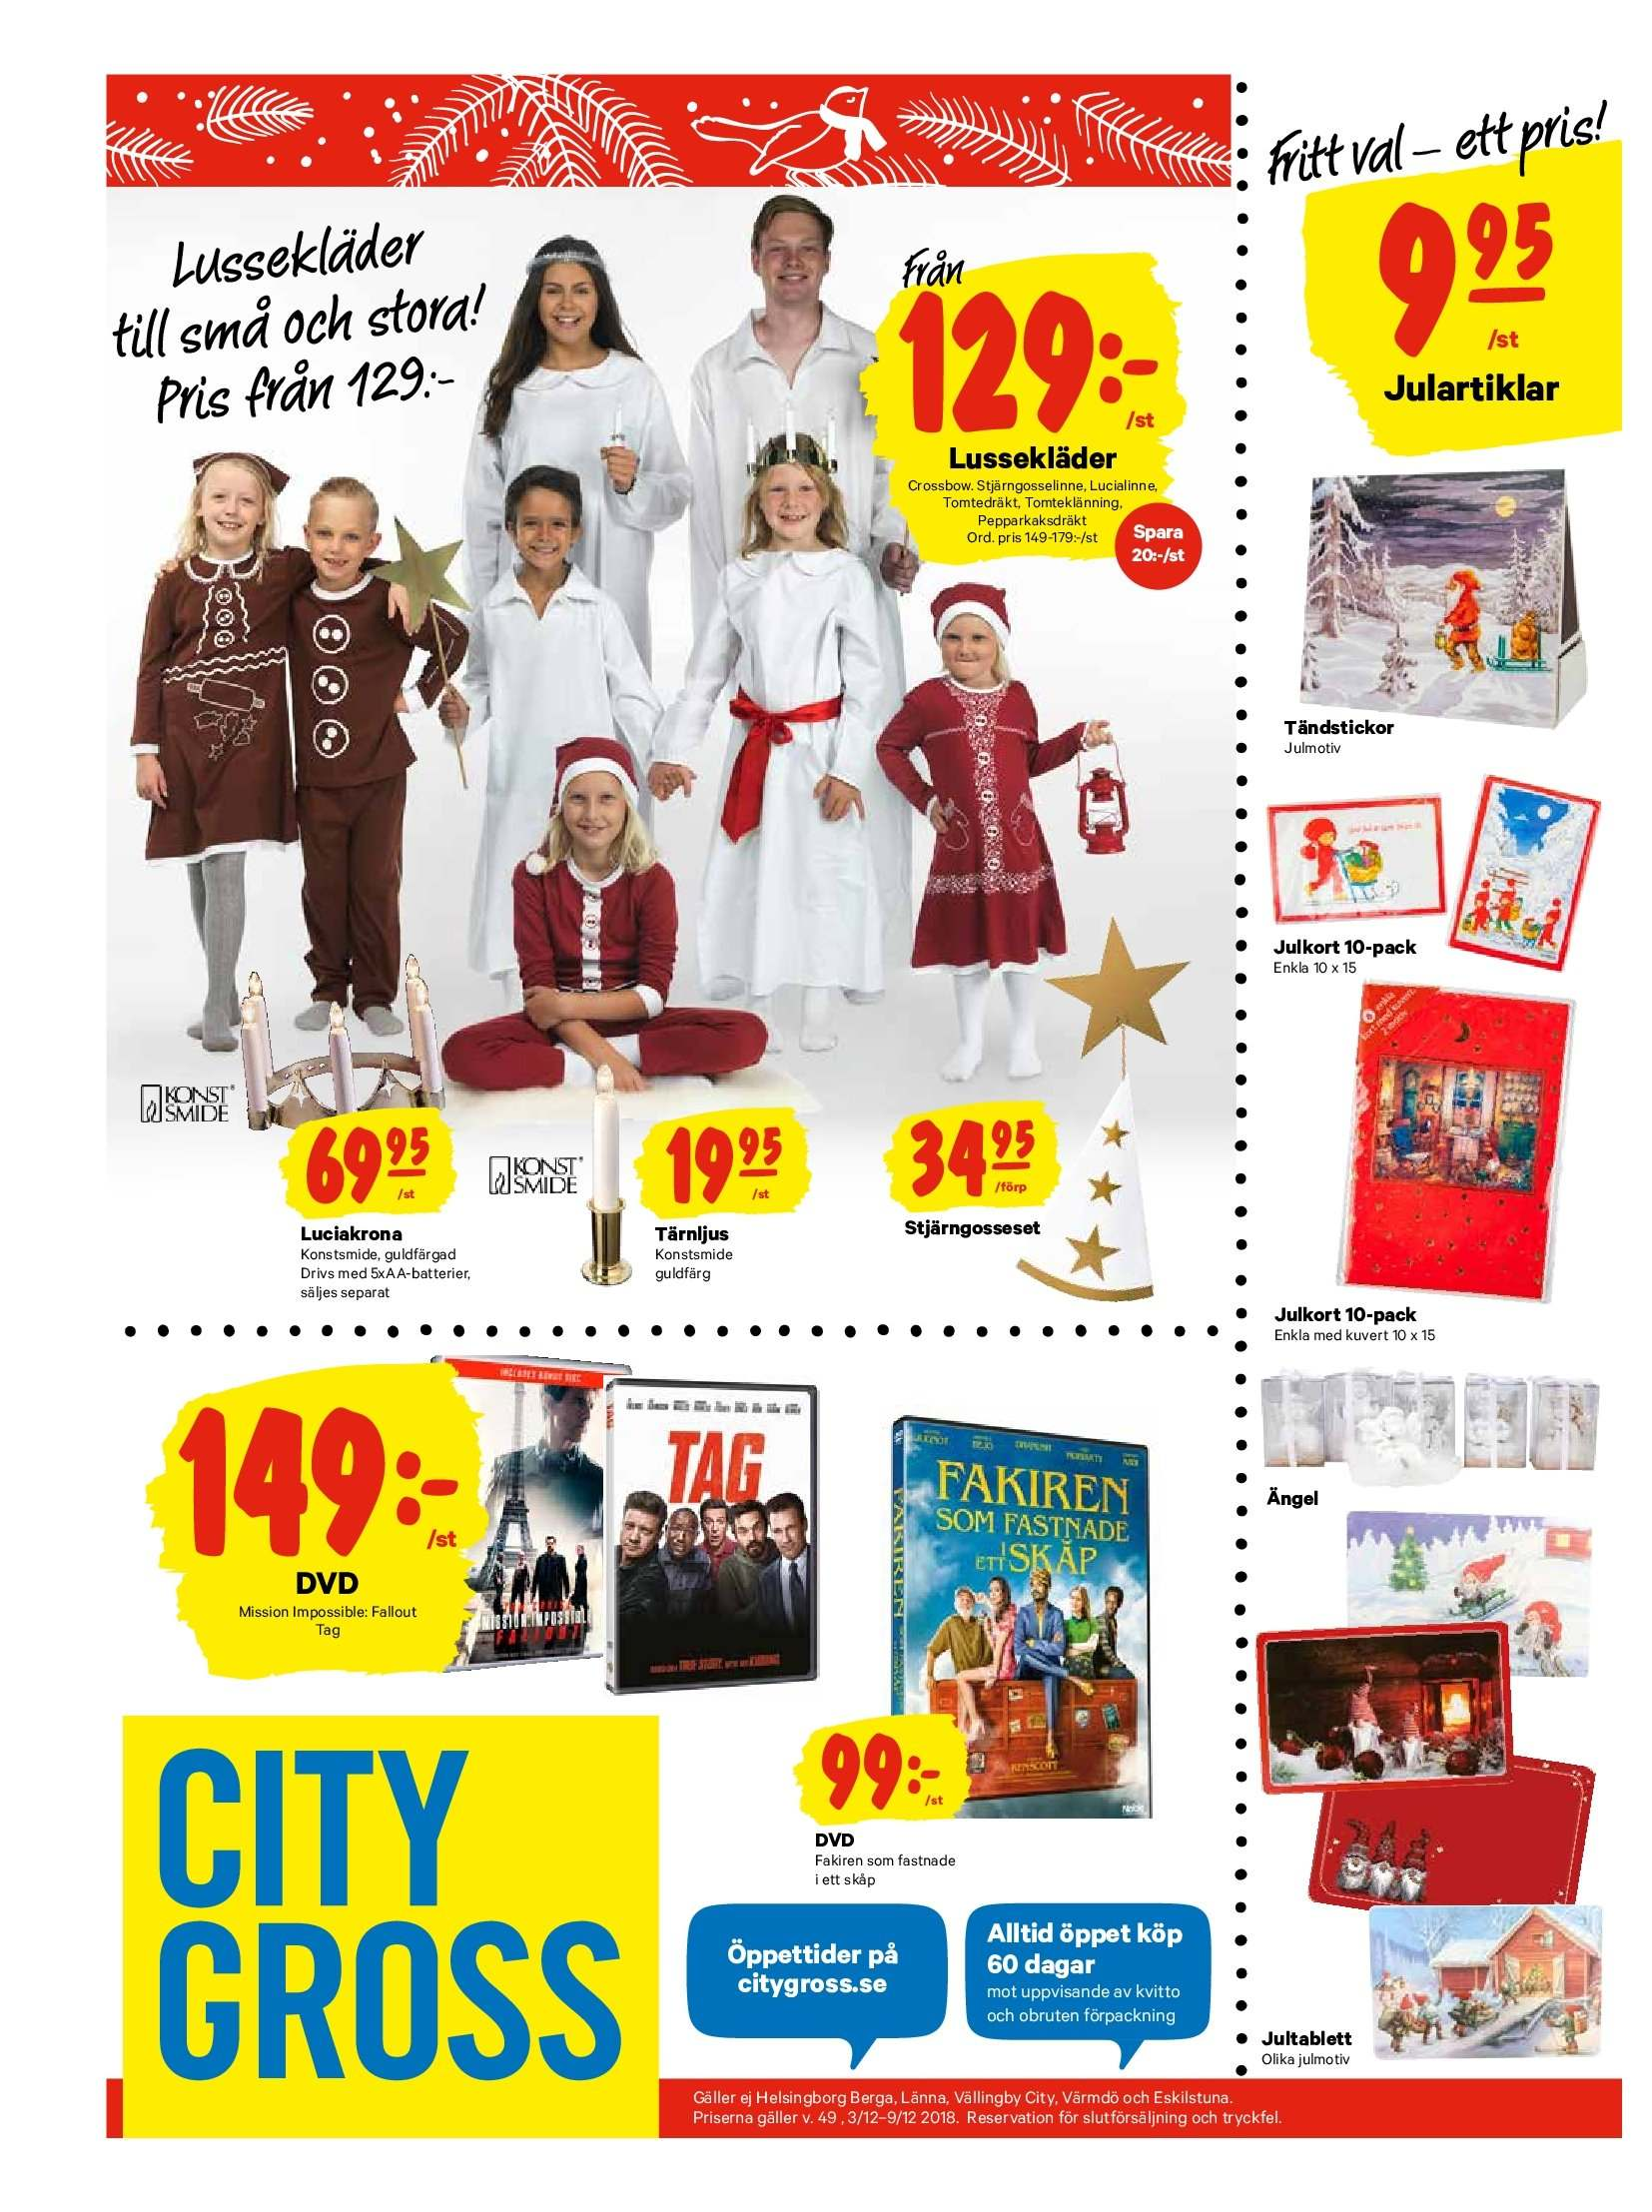 City Gross reklamblad - 3/12 2018 - 9/12 2018. Sida 19.